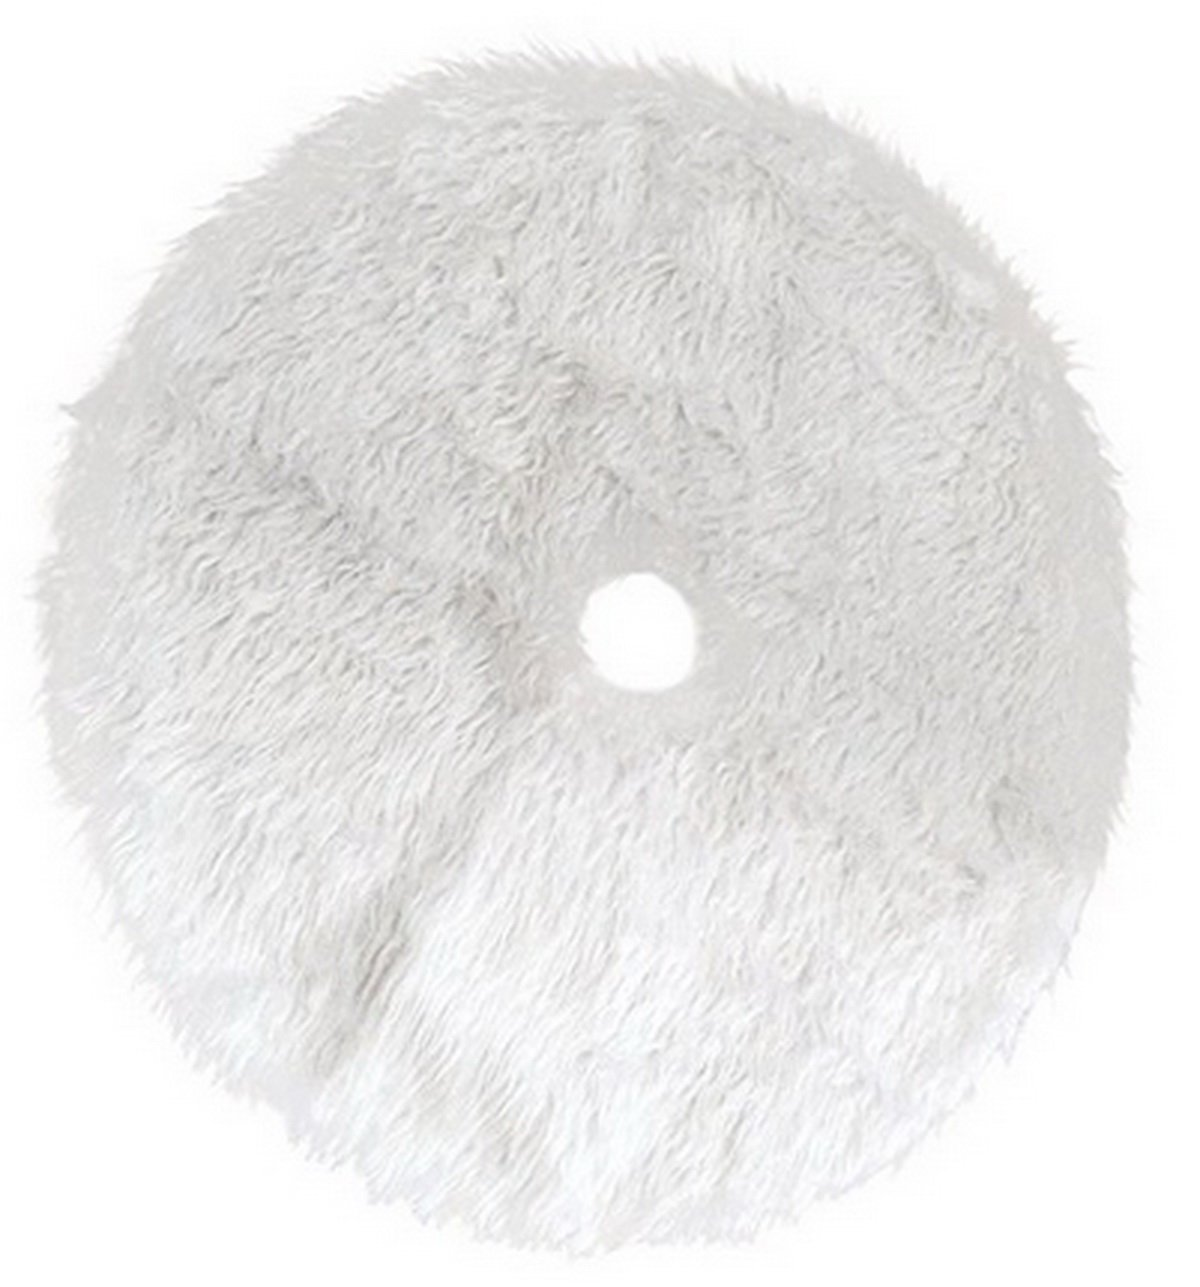 Christmas Tree Skirt Off White Plush Xmas Tree Ornaments Holiday Party Decorations (122cm(48inch))